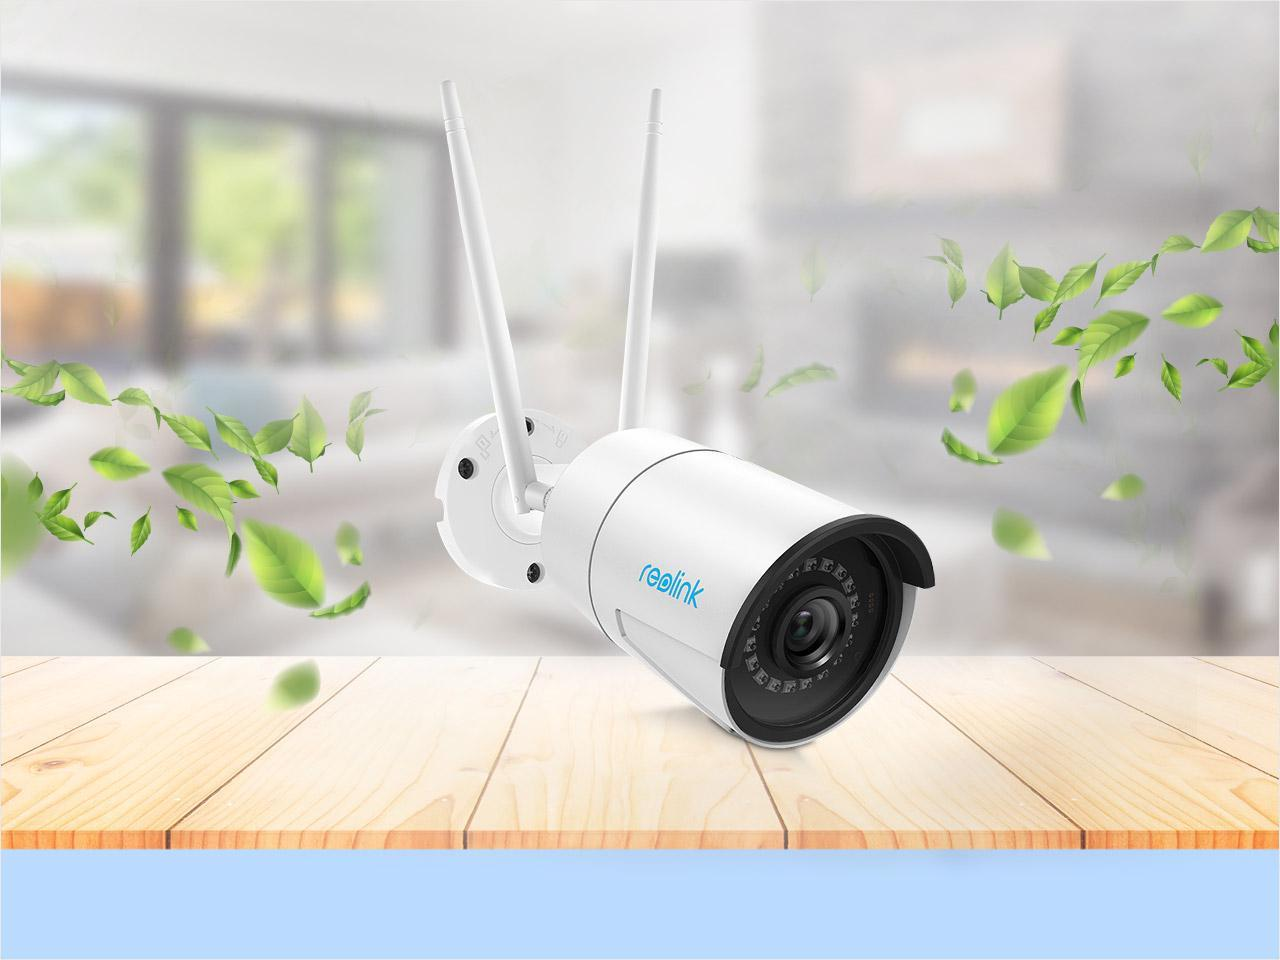 Reolink 4MP CCTV Camera Wired Wireless Support 2.4G/5G WiFi, 100ft Night Vision, Motion Detection, Local Storage, 24/7 Recording RLC-410W